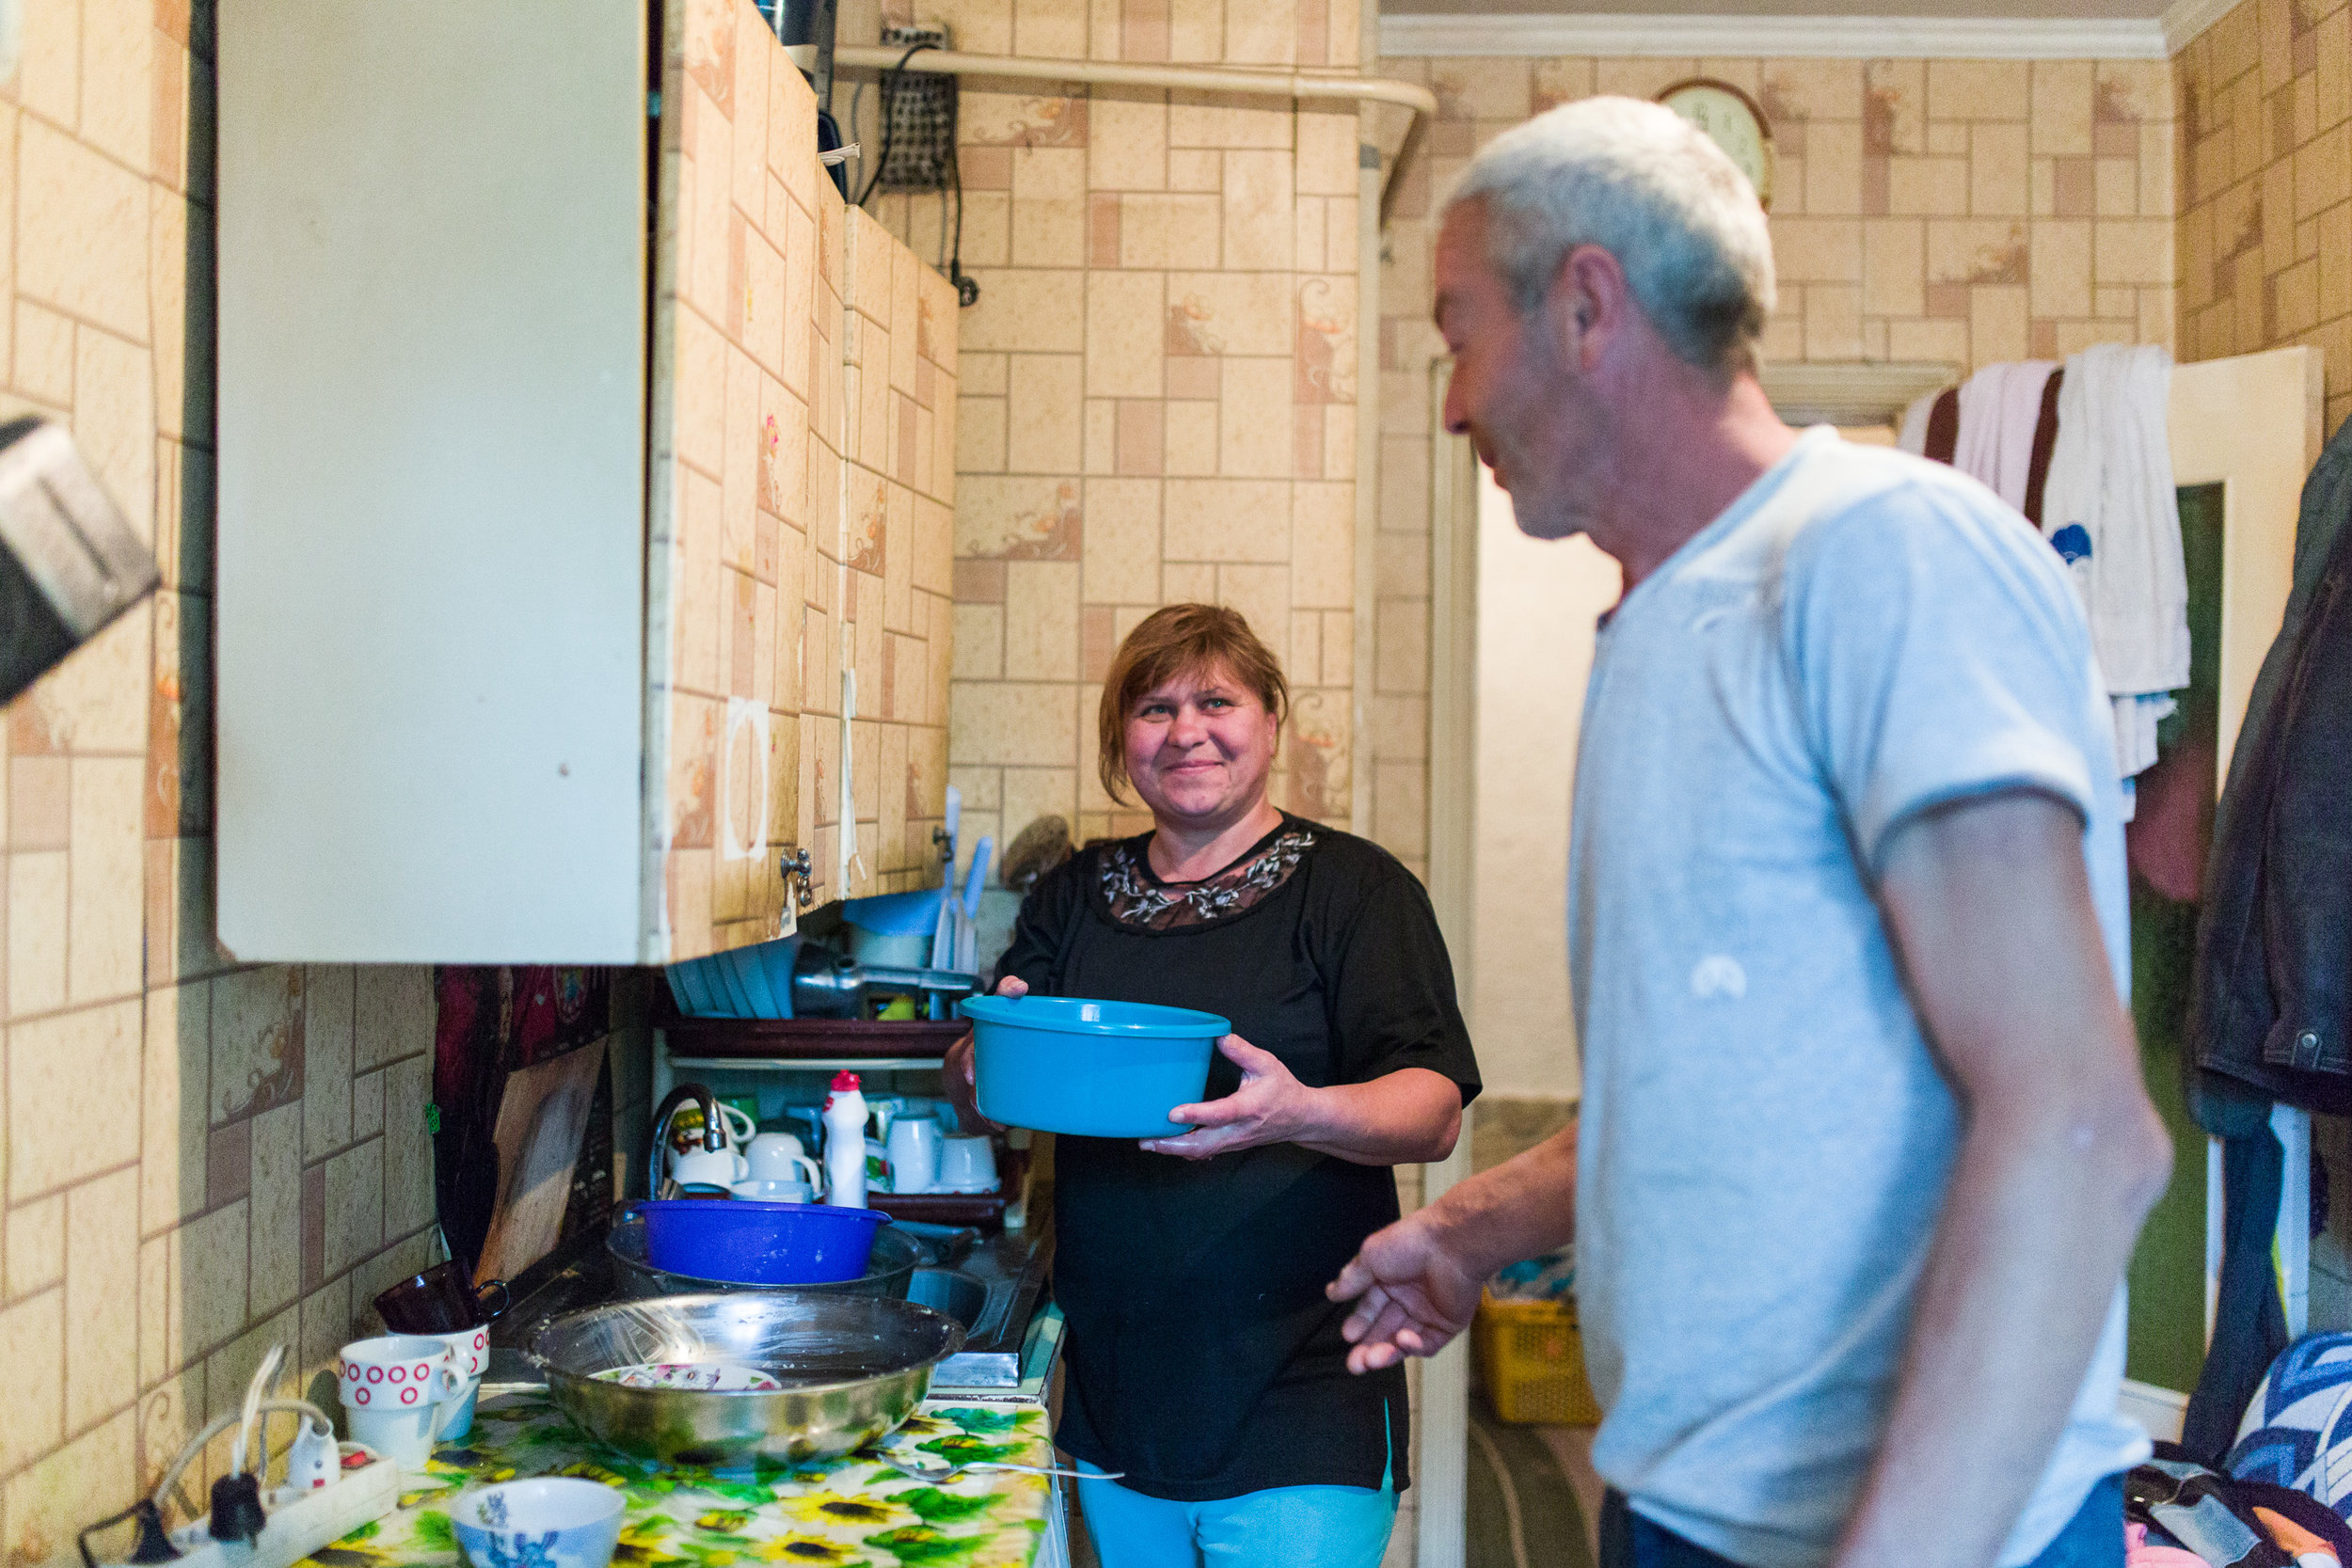 """Vera, 45, and Nicola, 44, live in Roscani vilage, about 40 minutes from Moldova's capital, Chisinau. Like many Moldovans, Nicola went abroad to Russia to work. While in St. Petersburg he lived in cramped quarters with his workmates, all working in construction.  When he returned home in 2015, Nicola had a severe cough, and Vera suggested he see the doctor. A check-up found TB. Nicola started treatment right away, and adhered to an 8-month course of daily tablets. Vera supported him to continue treatment - and she and their six children remained healthy. Now, Nicola has a clean bill of health. """"Ending TB means I don't infect other people,"""" says Nicola. """"It's normal that I supportedg him to get well,"""" says Vera. """"We should stop TB."""""""